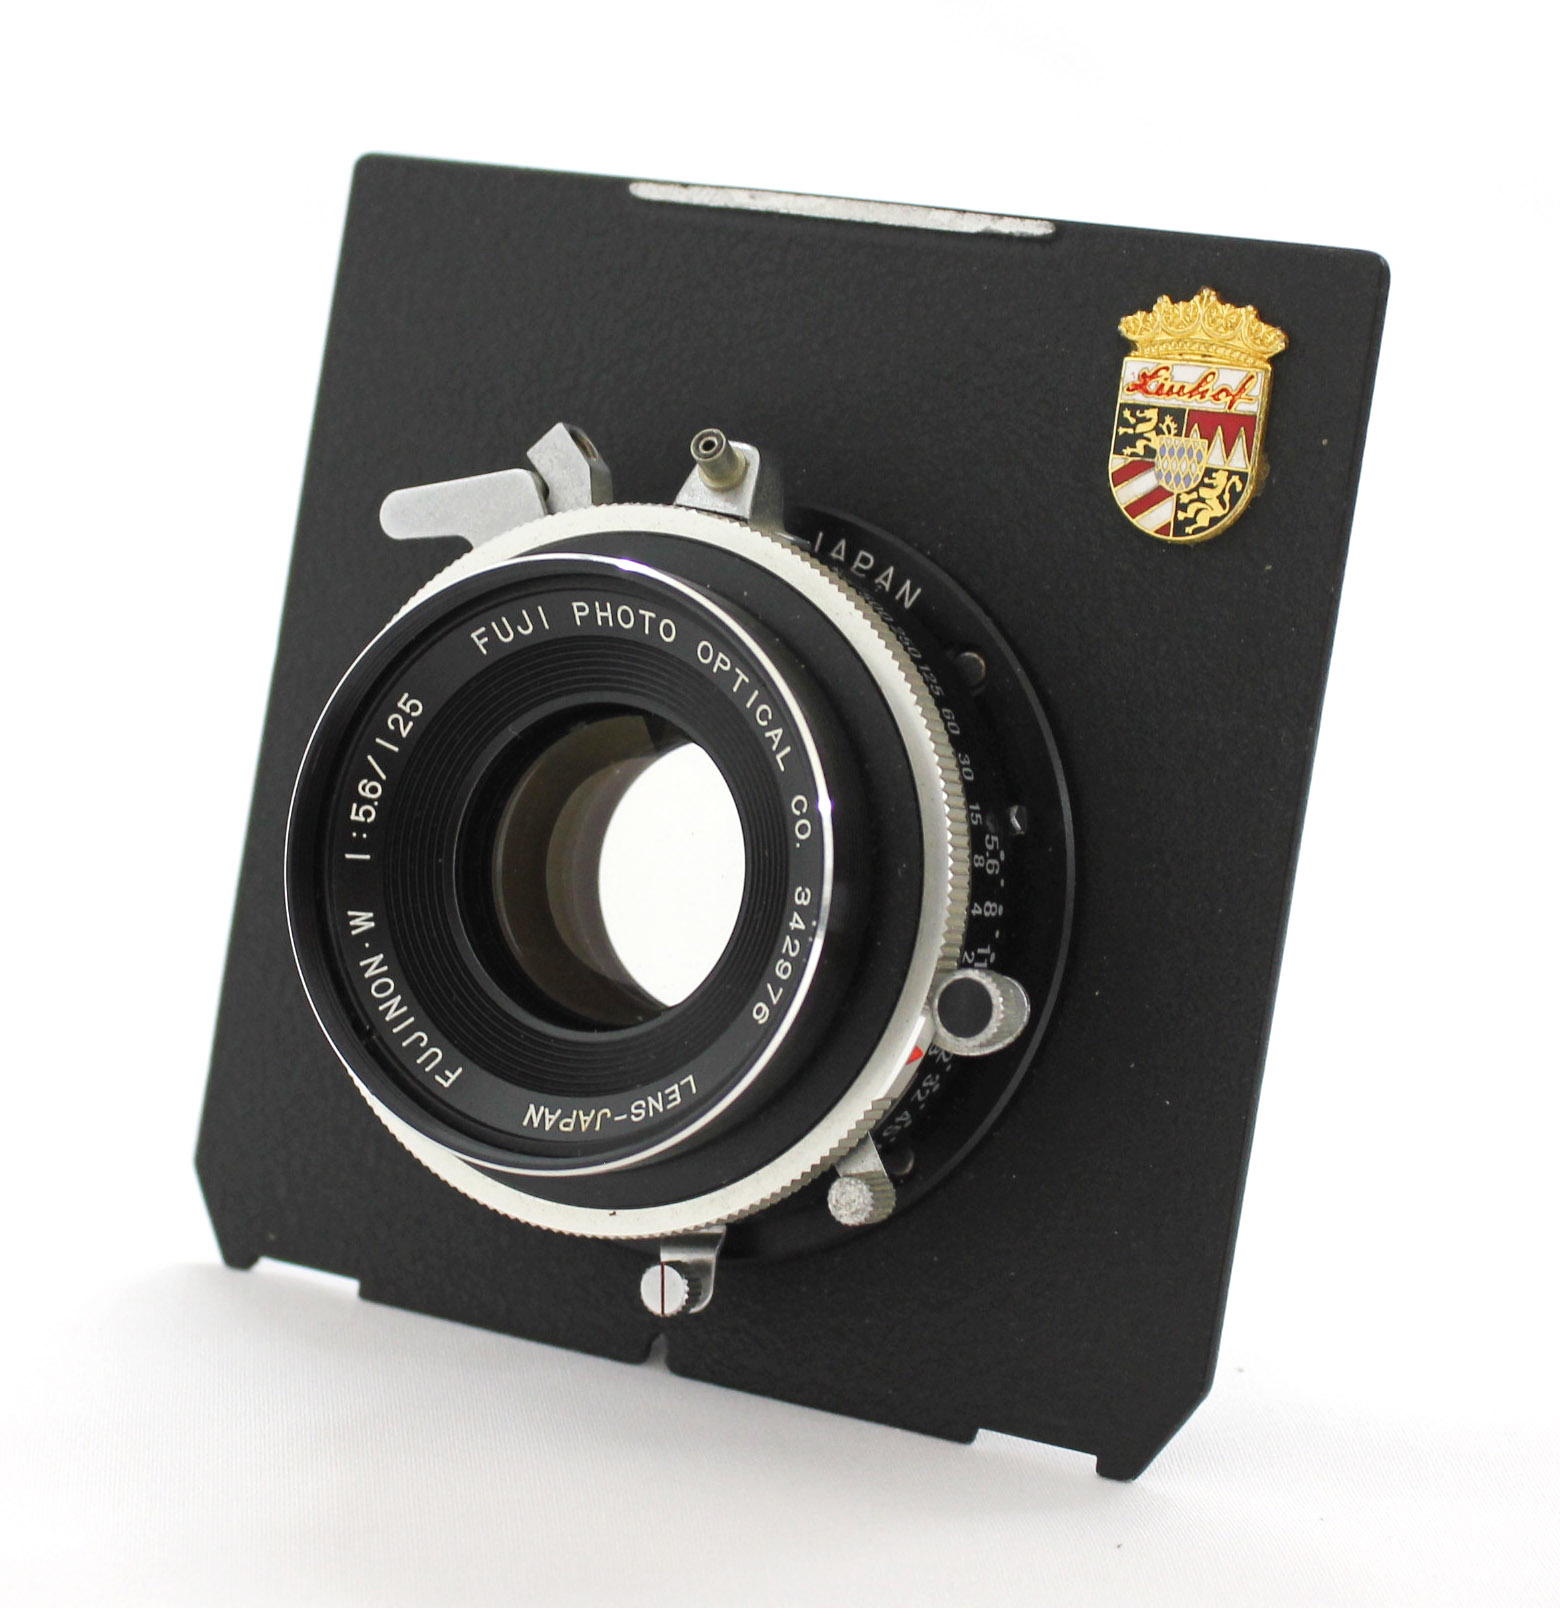 Japan Used Camera Shop | Fuji Fujinon W 125mm F/5.6 4x5 Large Format Lens with Seiko Shutter Linhof Board from Japan